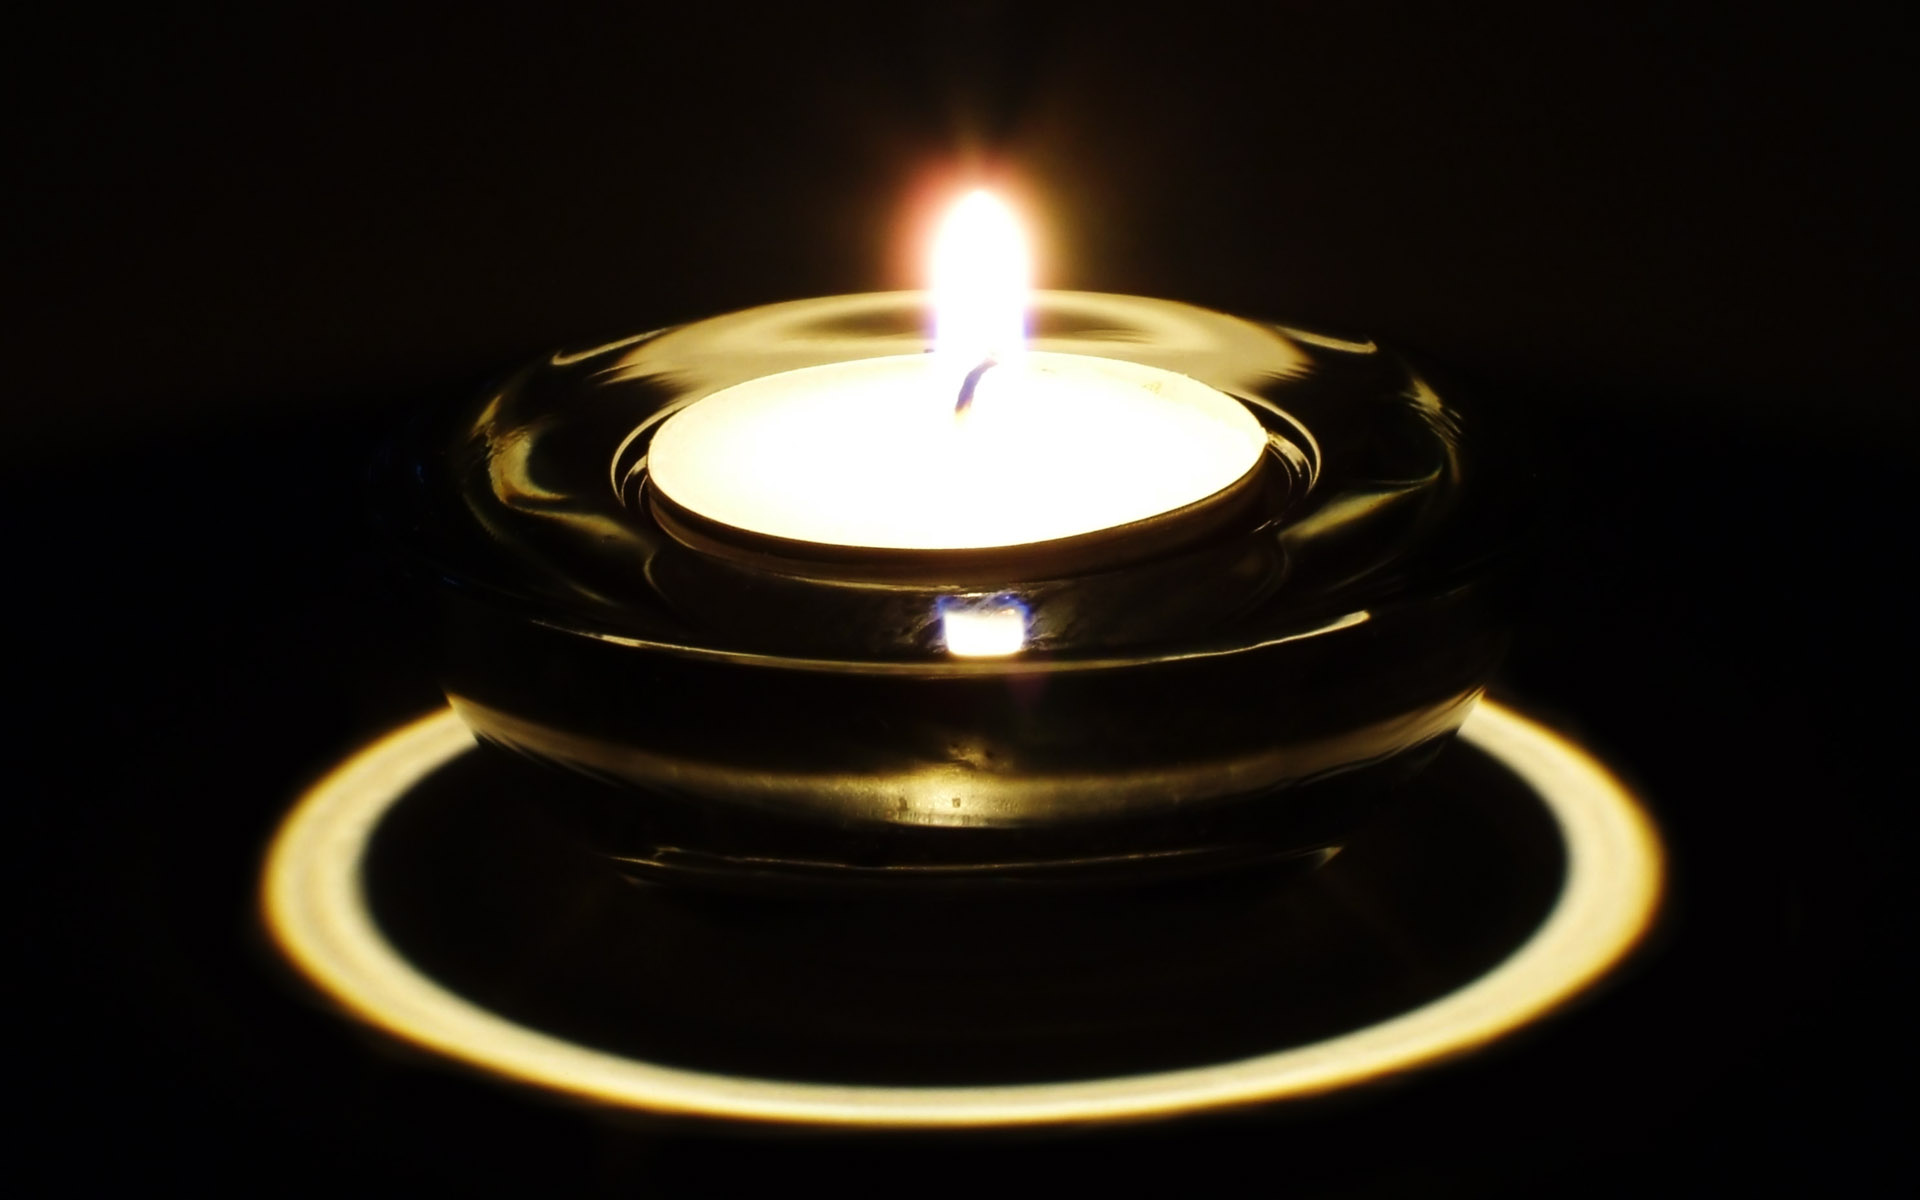 Candle wallpaper 4153